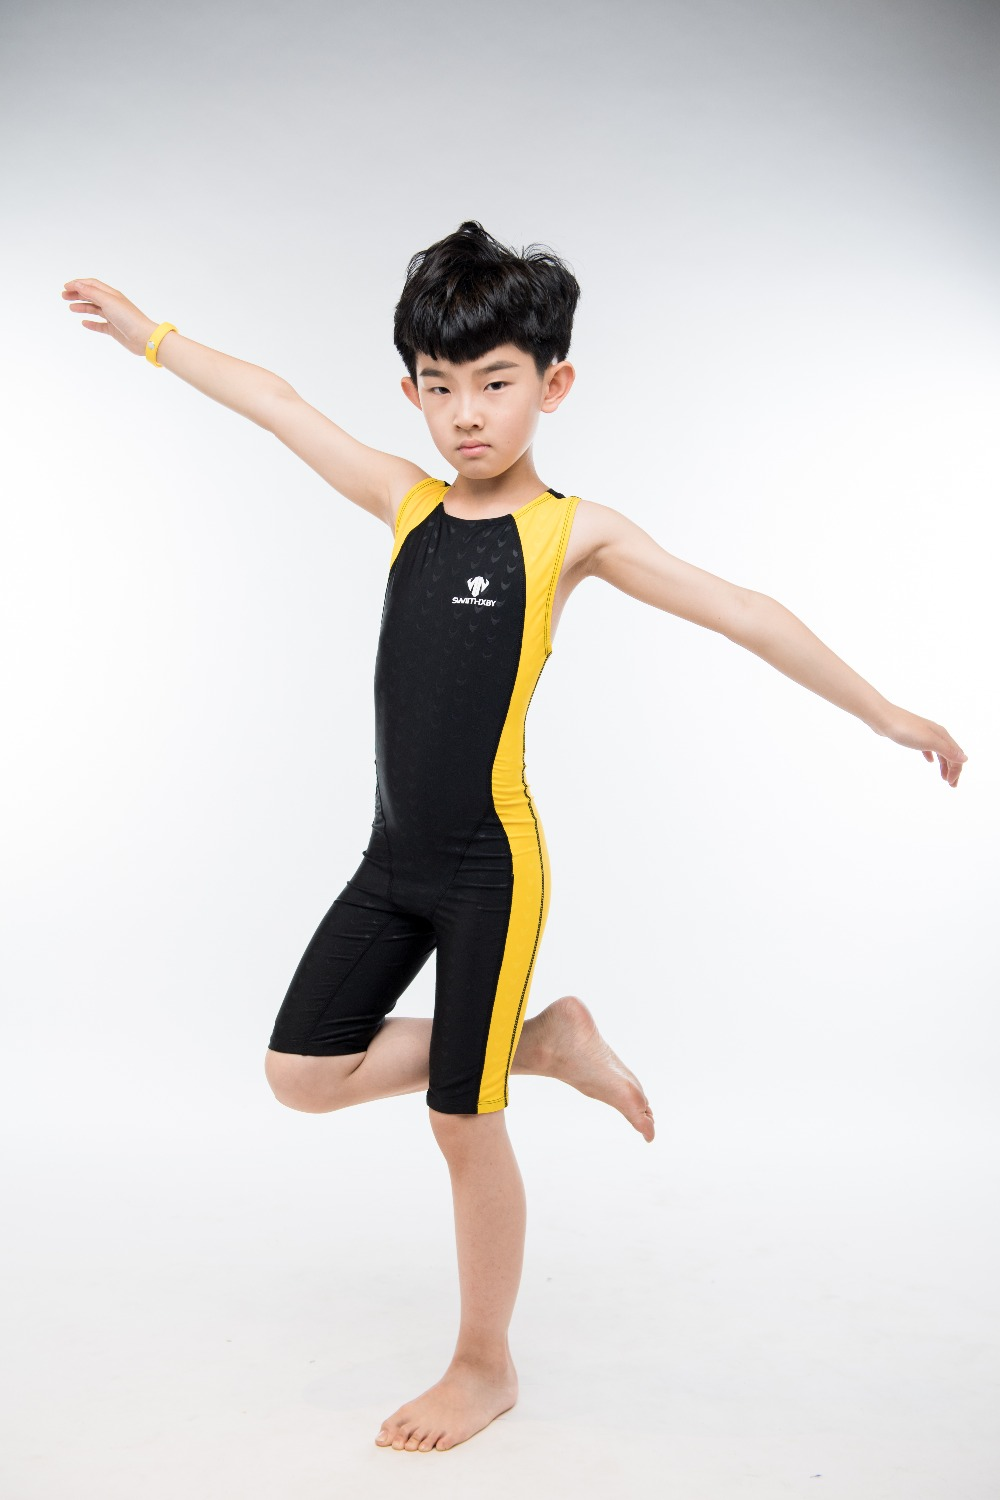 Boy Nylon One Piece Surfing Suit Professional Sport Swimwear Children Racing Training Bathing Sail Competition Board Beach Wear phinikiss printed racing swimwear large size one piece suit professional swimsuit sport bathing suit competition 2016 triathlon